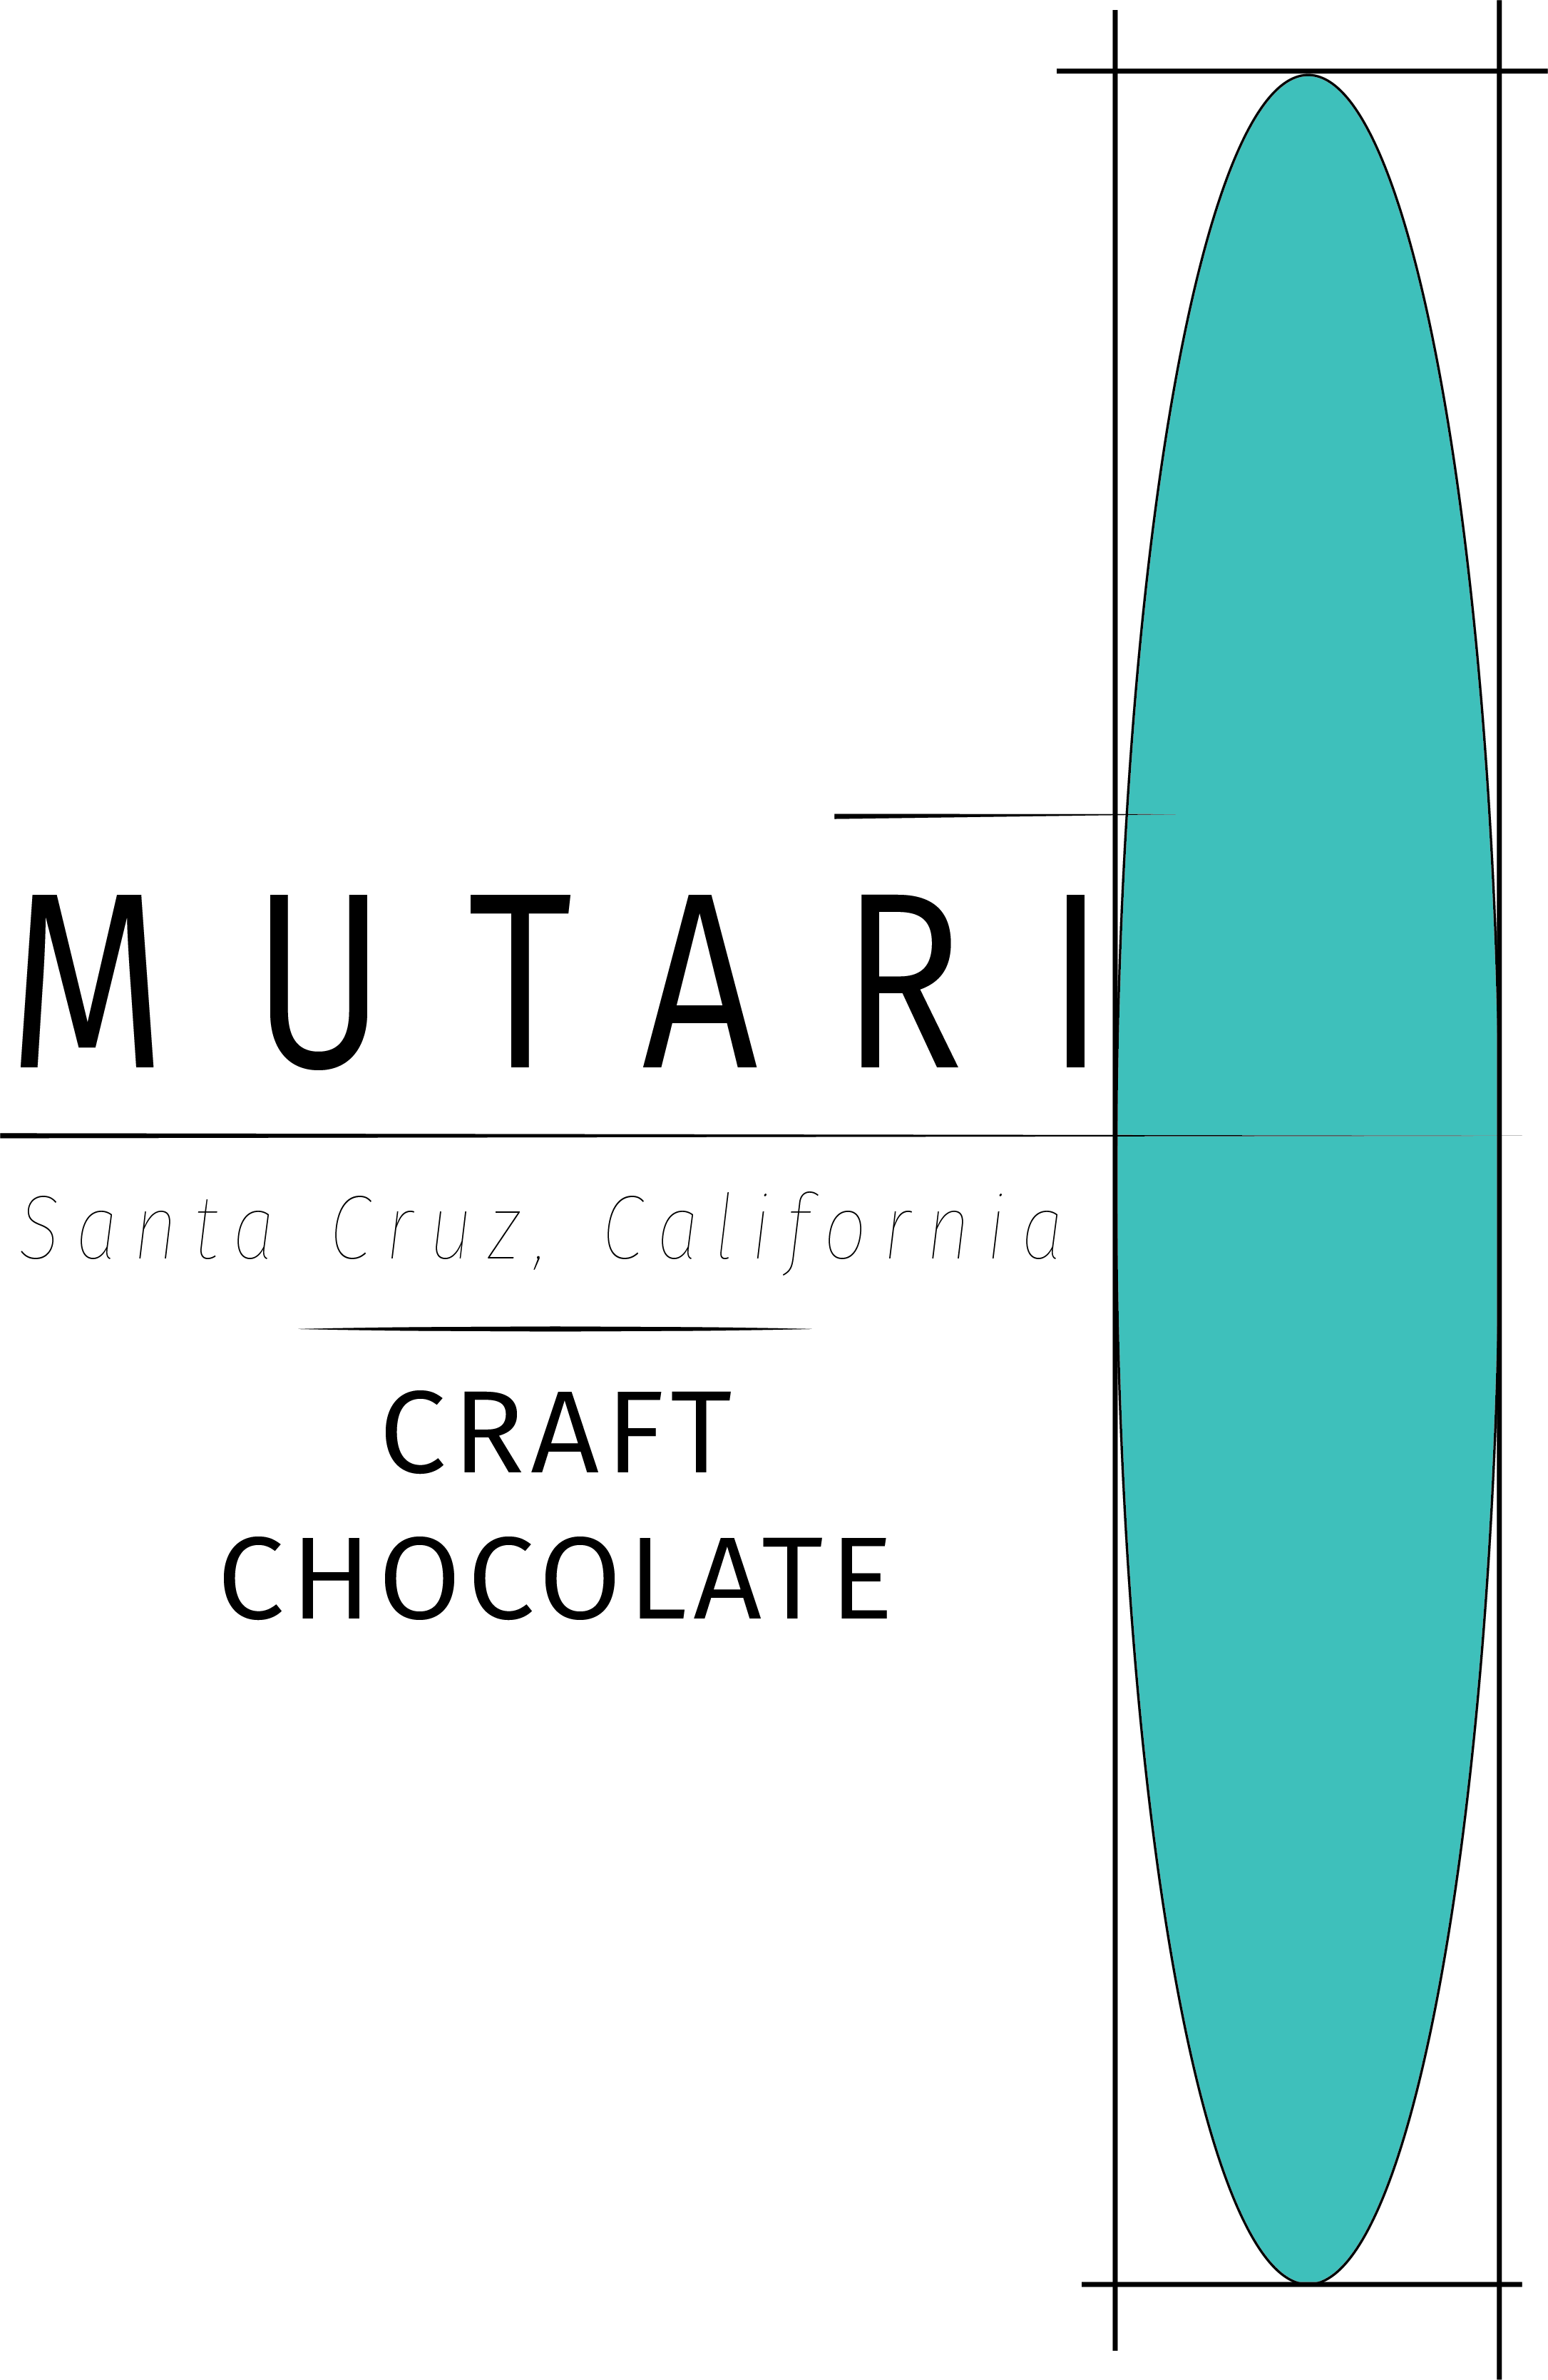 Mutari Chocolate 504 A Front St. Santa Cruz, CA95060   - Our drinking chocolate shop features the complete White Label Chocolate line-up and offers a one of a kind chocolate house experience featuring our bean to cup, single origin tasting flights of sipping chocolates.  Hours:Friday : 12:00pm-10:00pmSaturday : 12:00pm-10:00pmSunday : 12:00pm-8:00pm